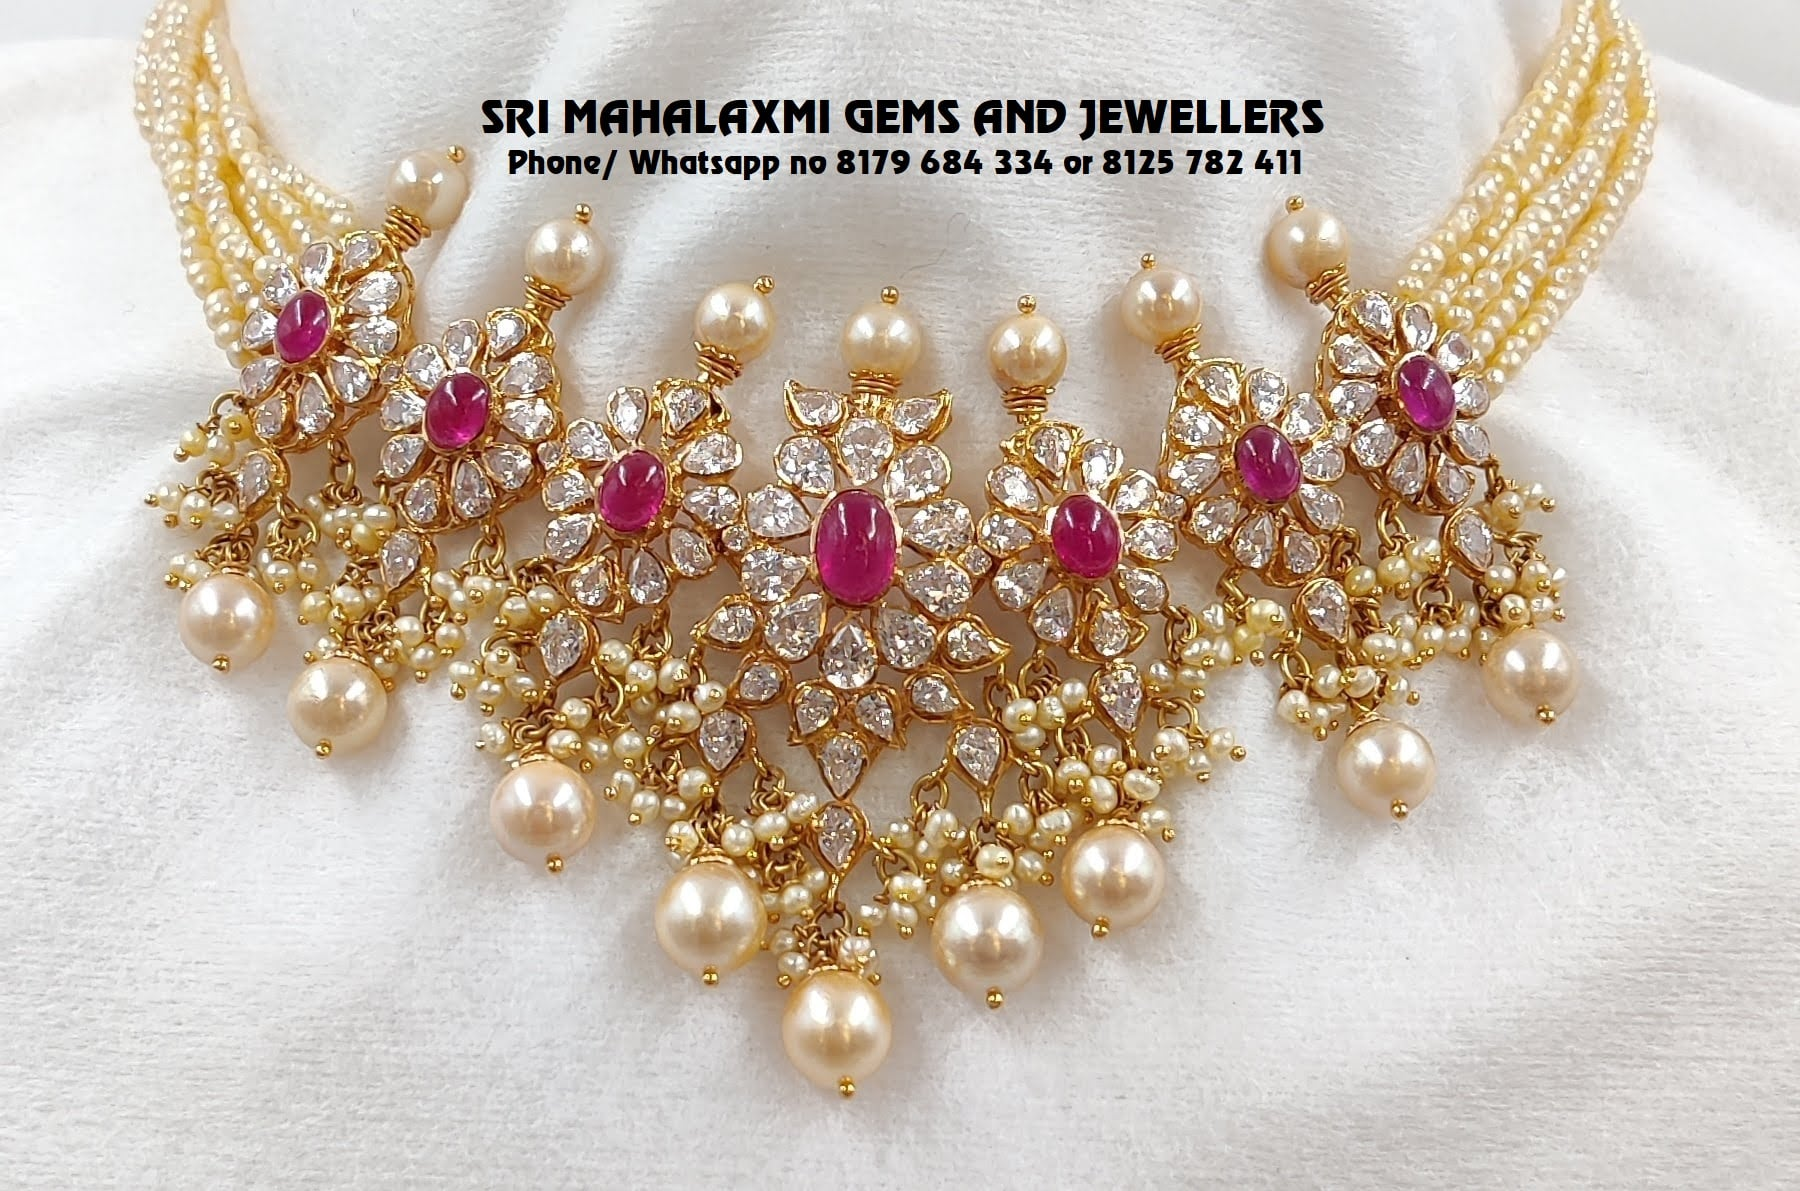 Presenting Swaroski cz choker with fine quality pearls chain. Visit  for exclusive designs most competitive prices guaranteed. VIDEO CALL ON 8125 782 411 OR 8179 684 334  FREE SHIPPING IN MAJOR PARTS OF INDIA 2021-01-30